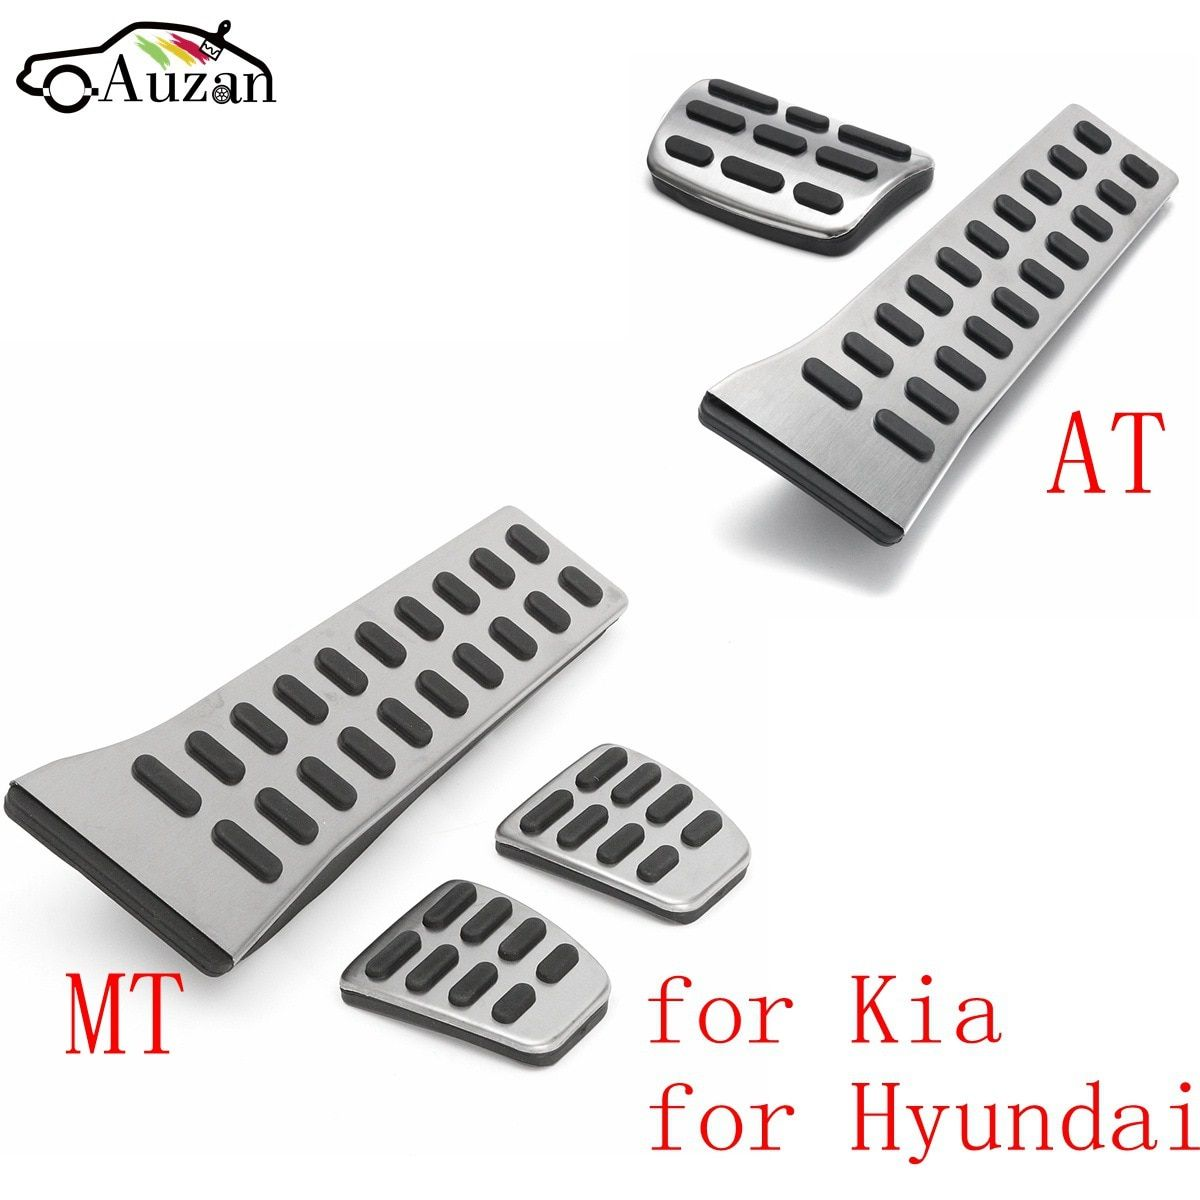 MT AT Car Accelerator Gas Fuel Brake Clutch Foot Pedal Cover For KIA Sportage QL 2016 2017 for Hyundai Sonata Fe